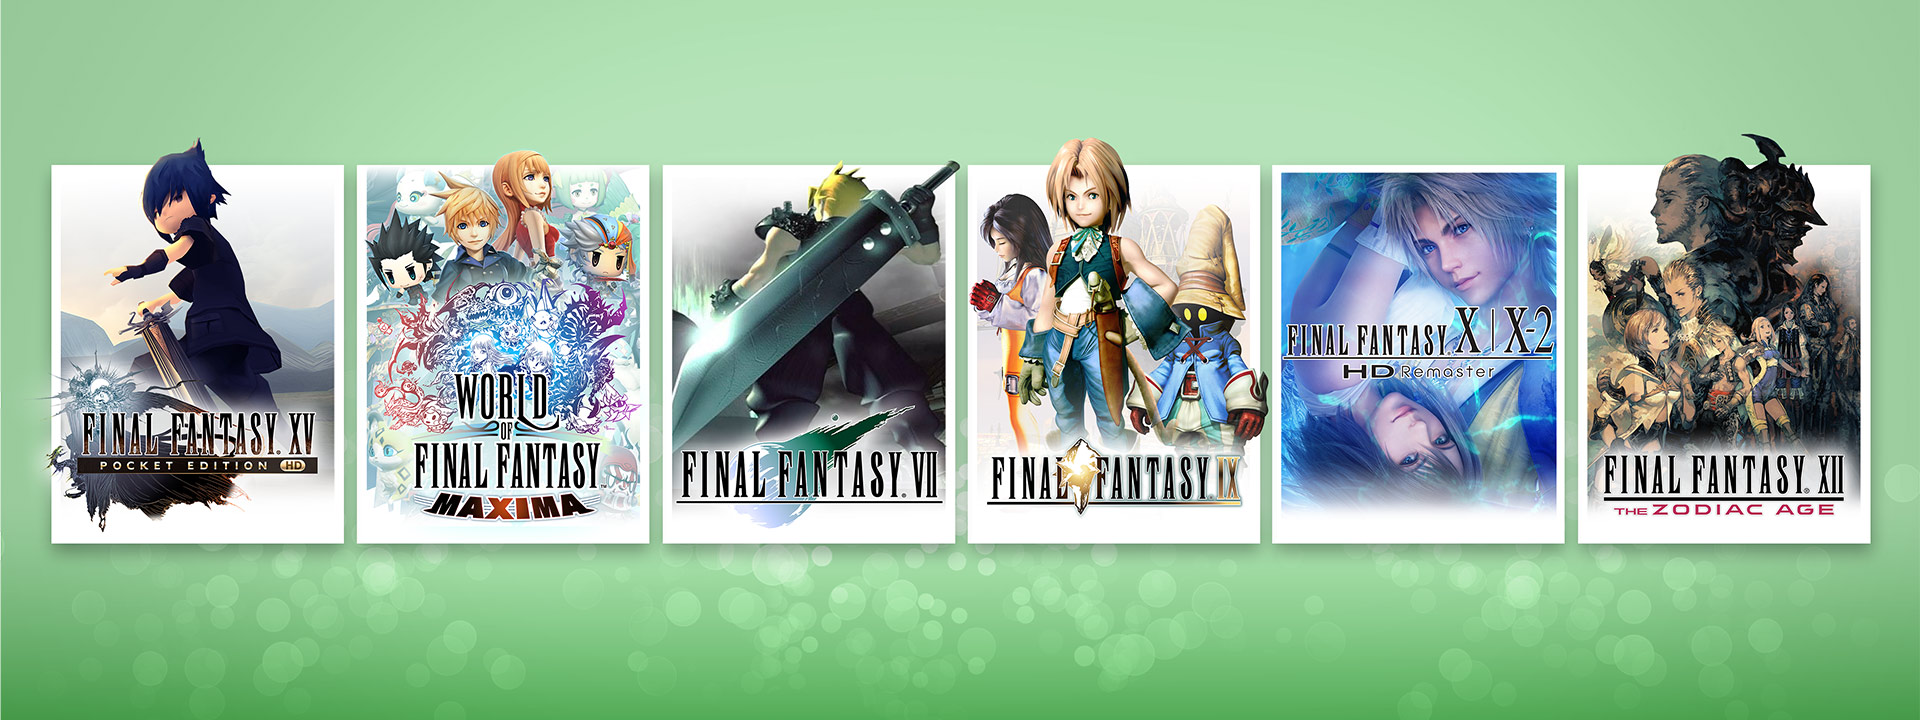 FINAL FANTASY XV ポケットエディション HD のボックスイメージ、WORLD OF FINAL FANTASY MAXIMA、FINAL FANTASY VII、FINAL FANTASY IX、FINAL FANTASY X | X-2 HD リマスター、FINAL FANTASY XII THE ZODIAC AGE